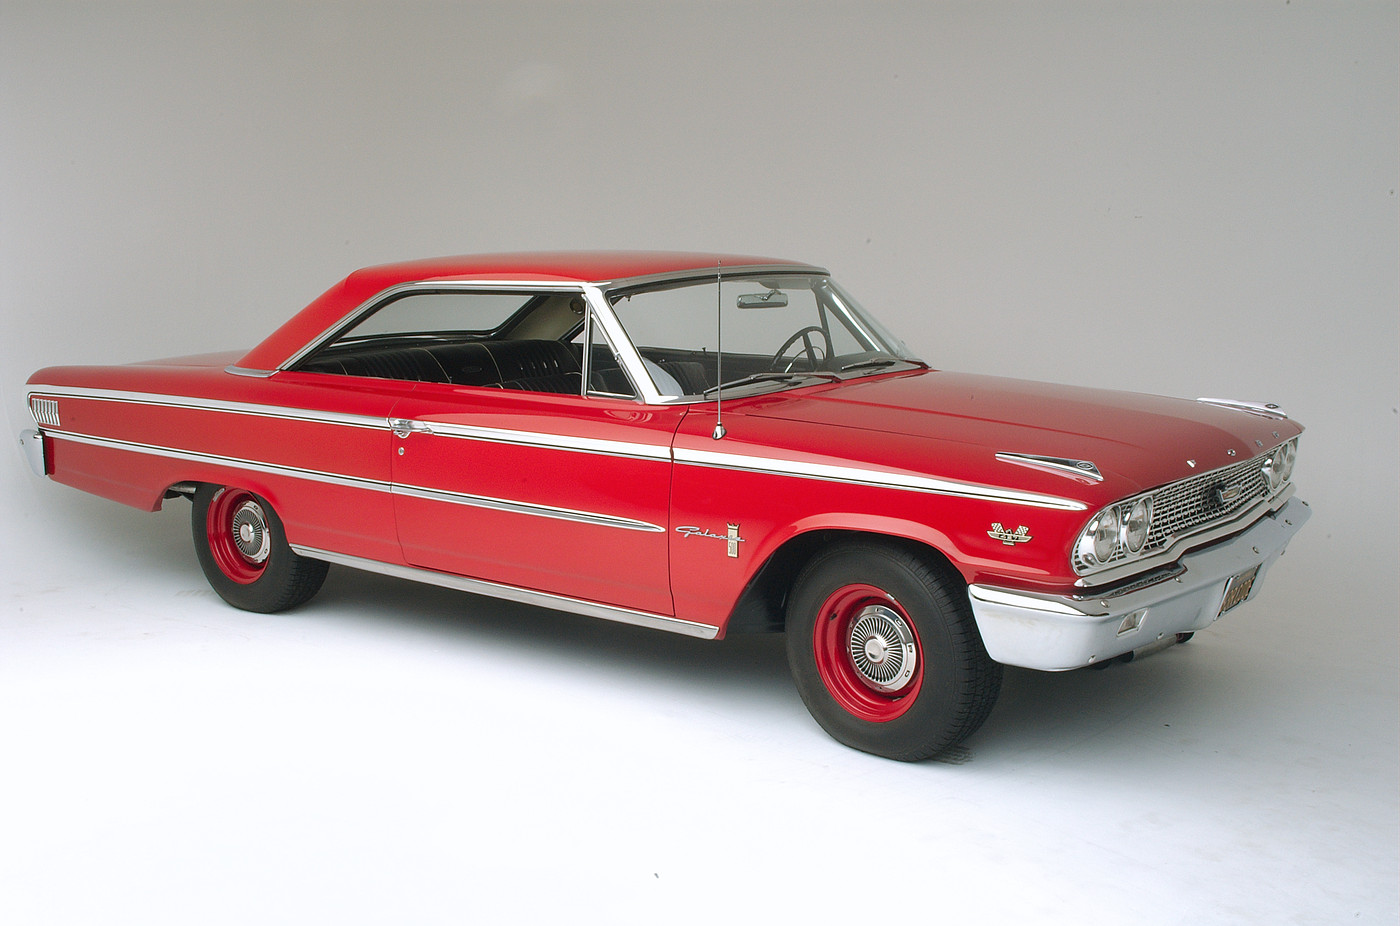 1963 Ford Galaxie 500 XL 427 R-code front three-quarter passenger side view